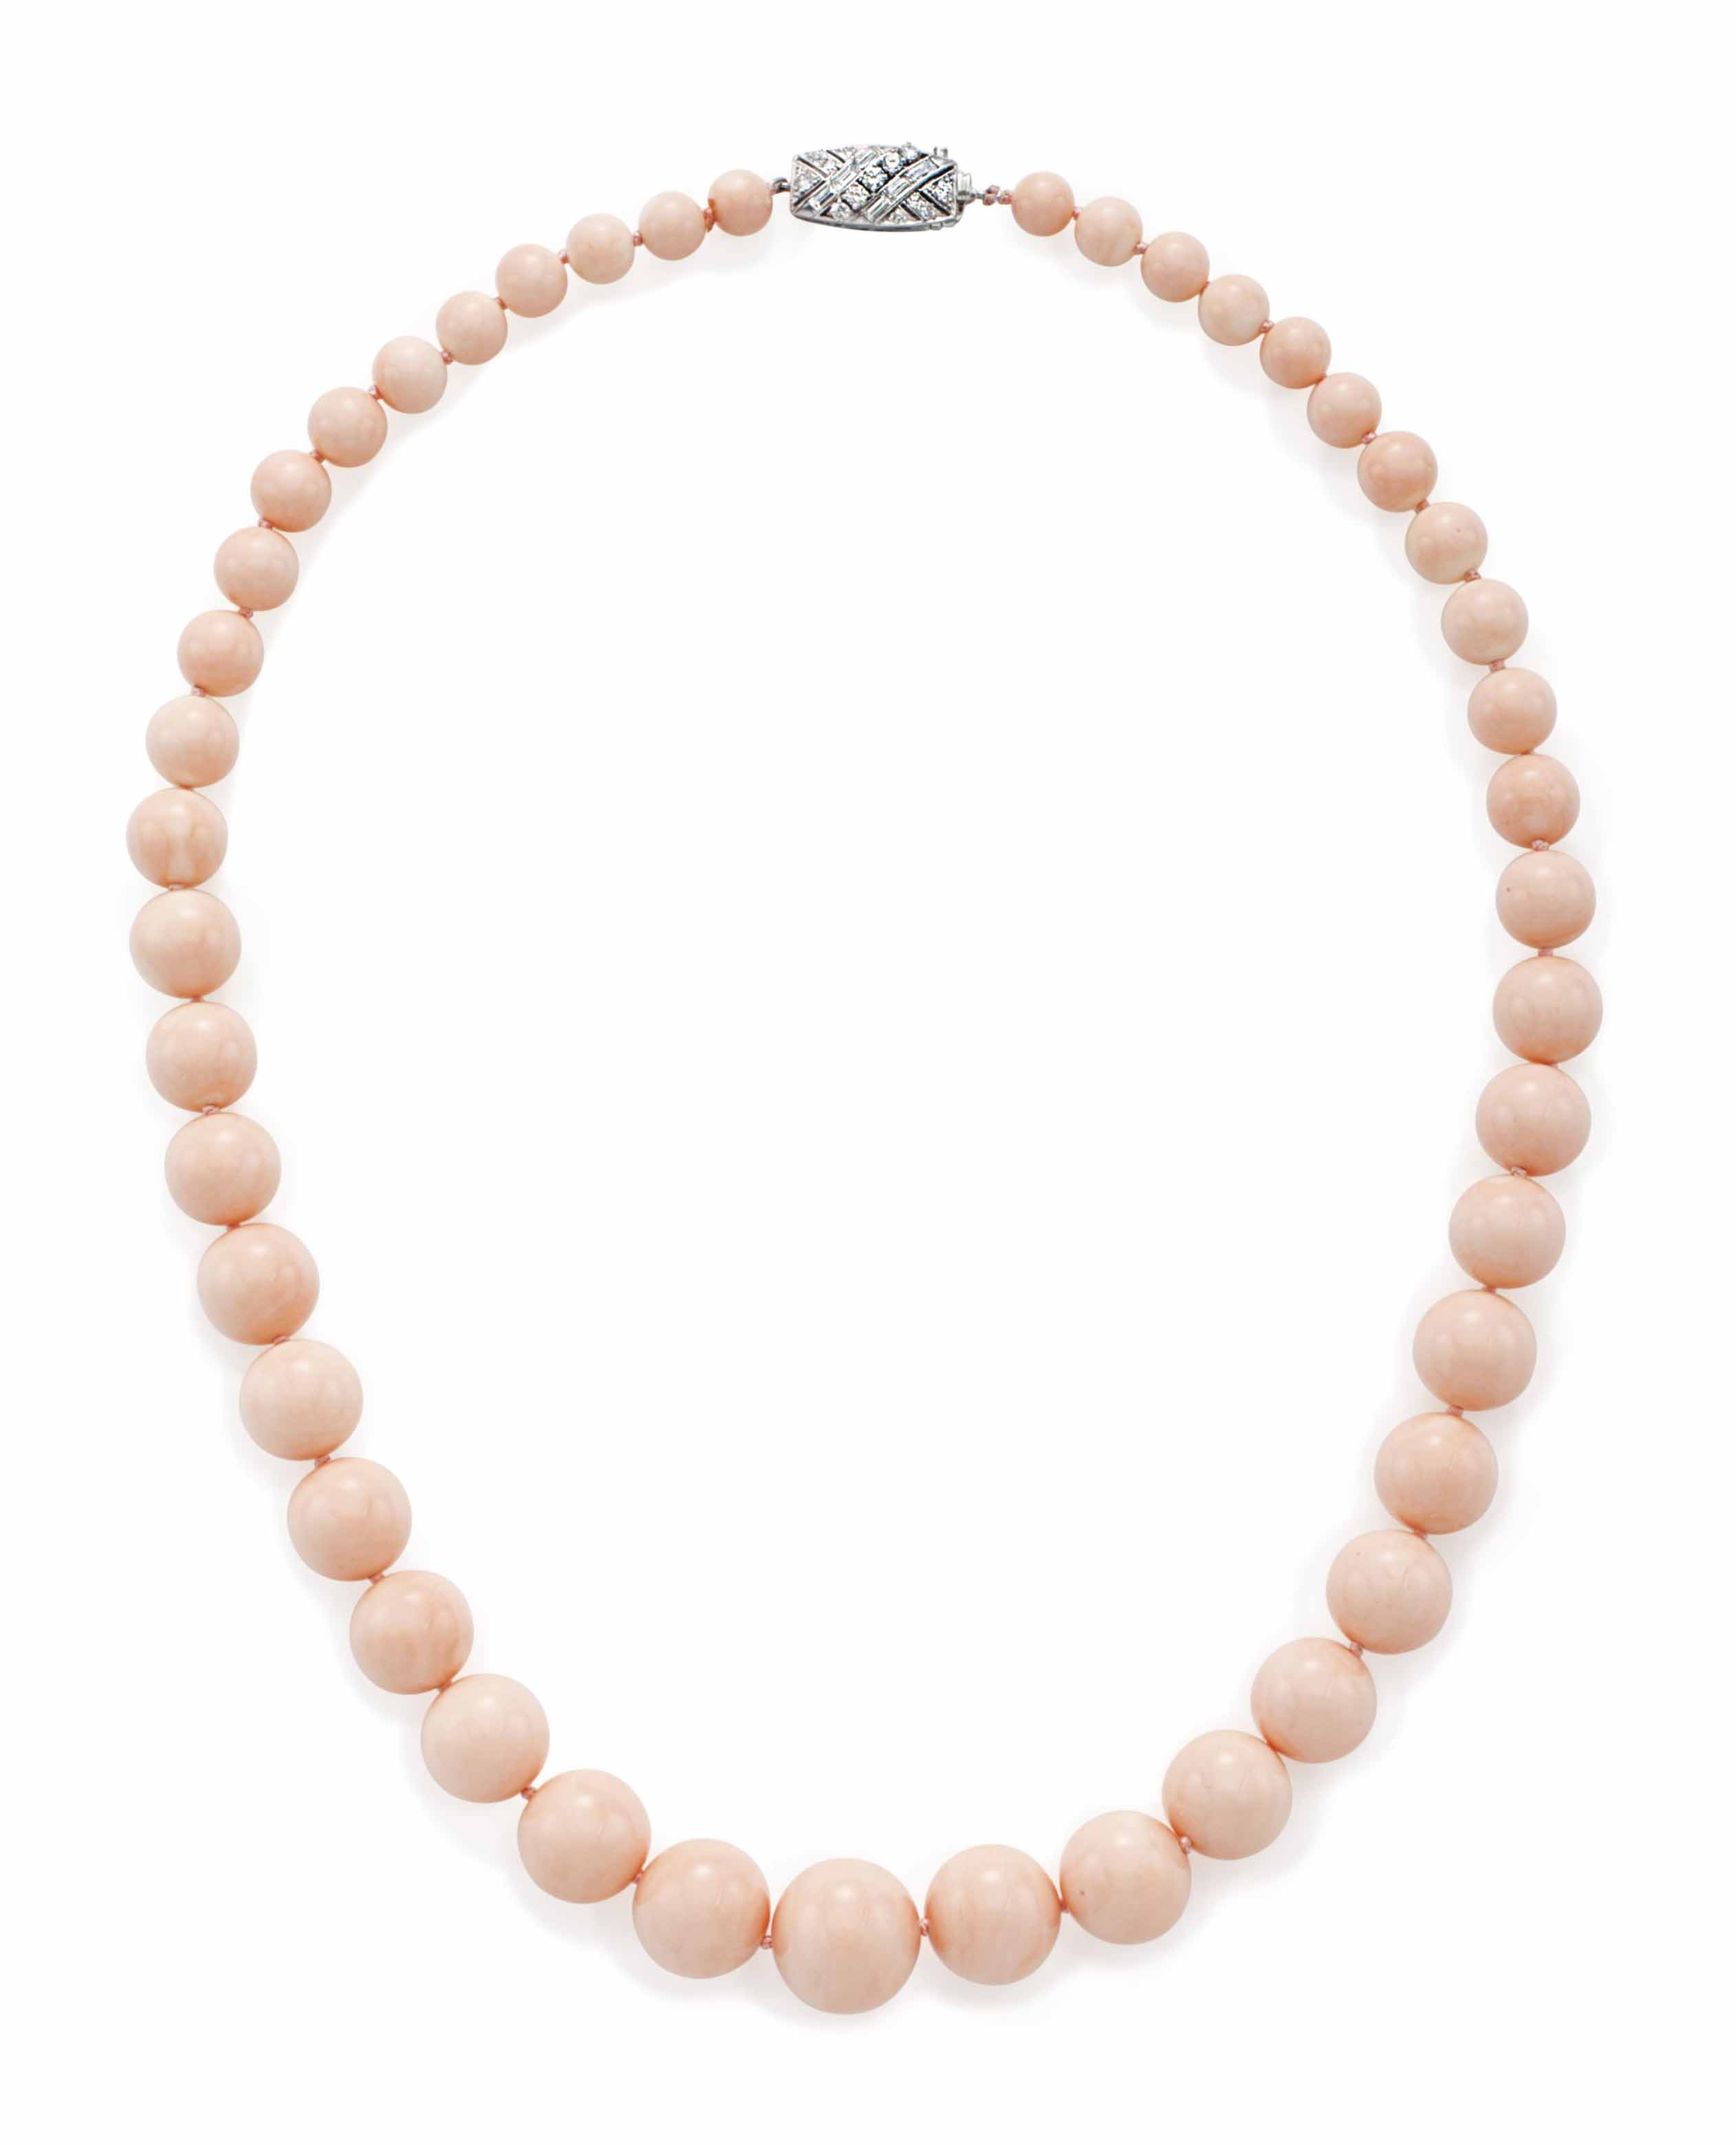 ~A CORAL BEAD AND DIAMOND NECK